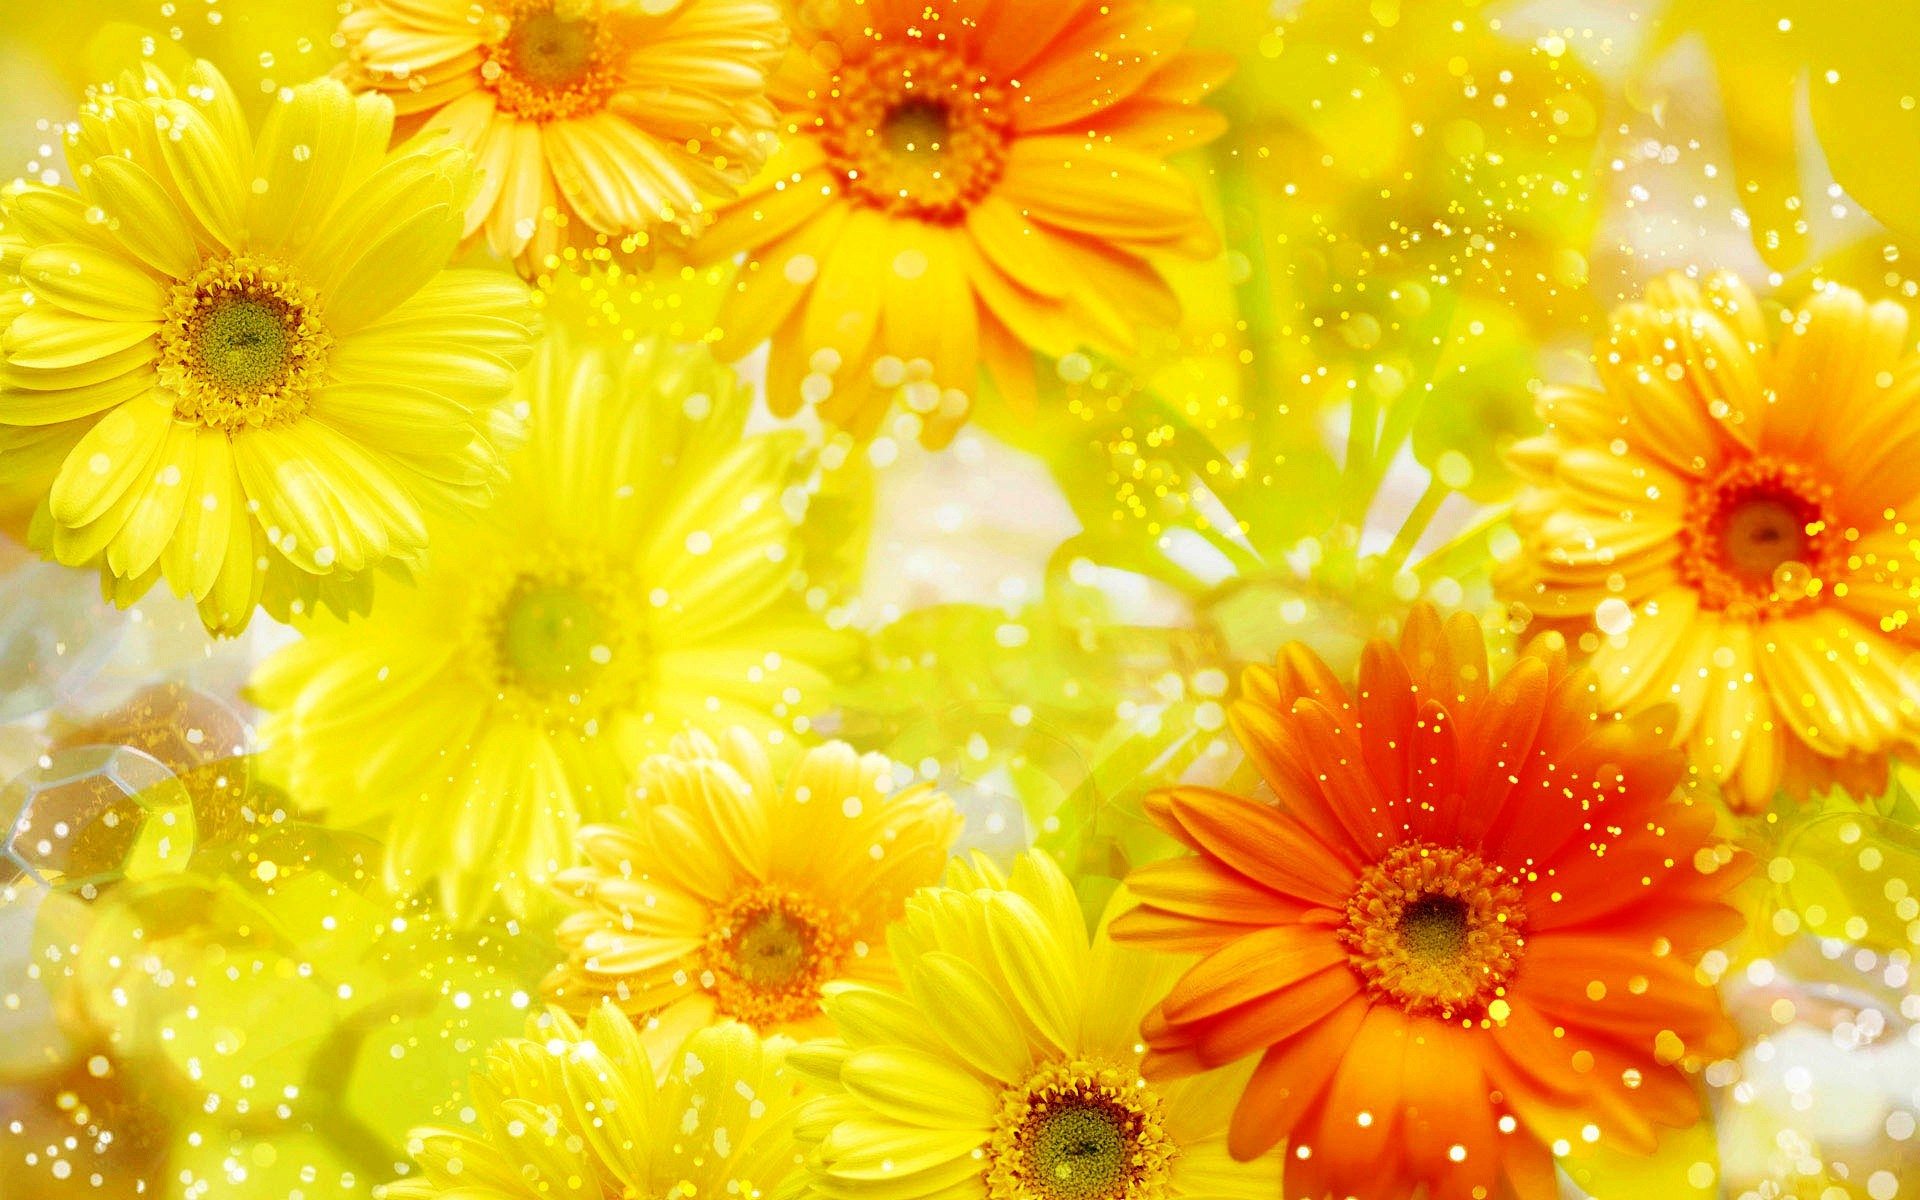 Cool Wallpapers For Phones 3d Yellow Flowers Background Wallpaper 1920x1200 23762